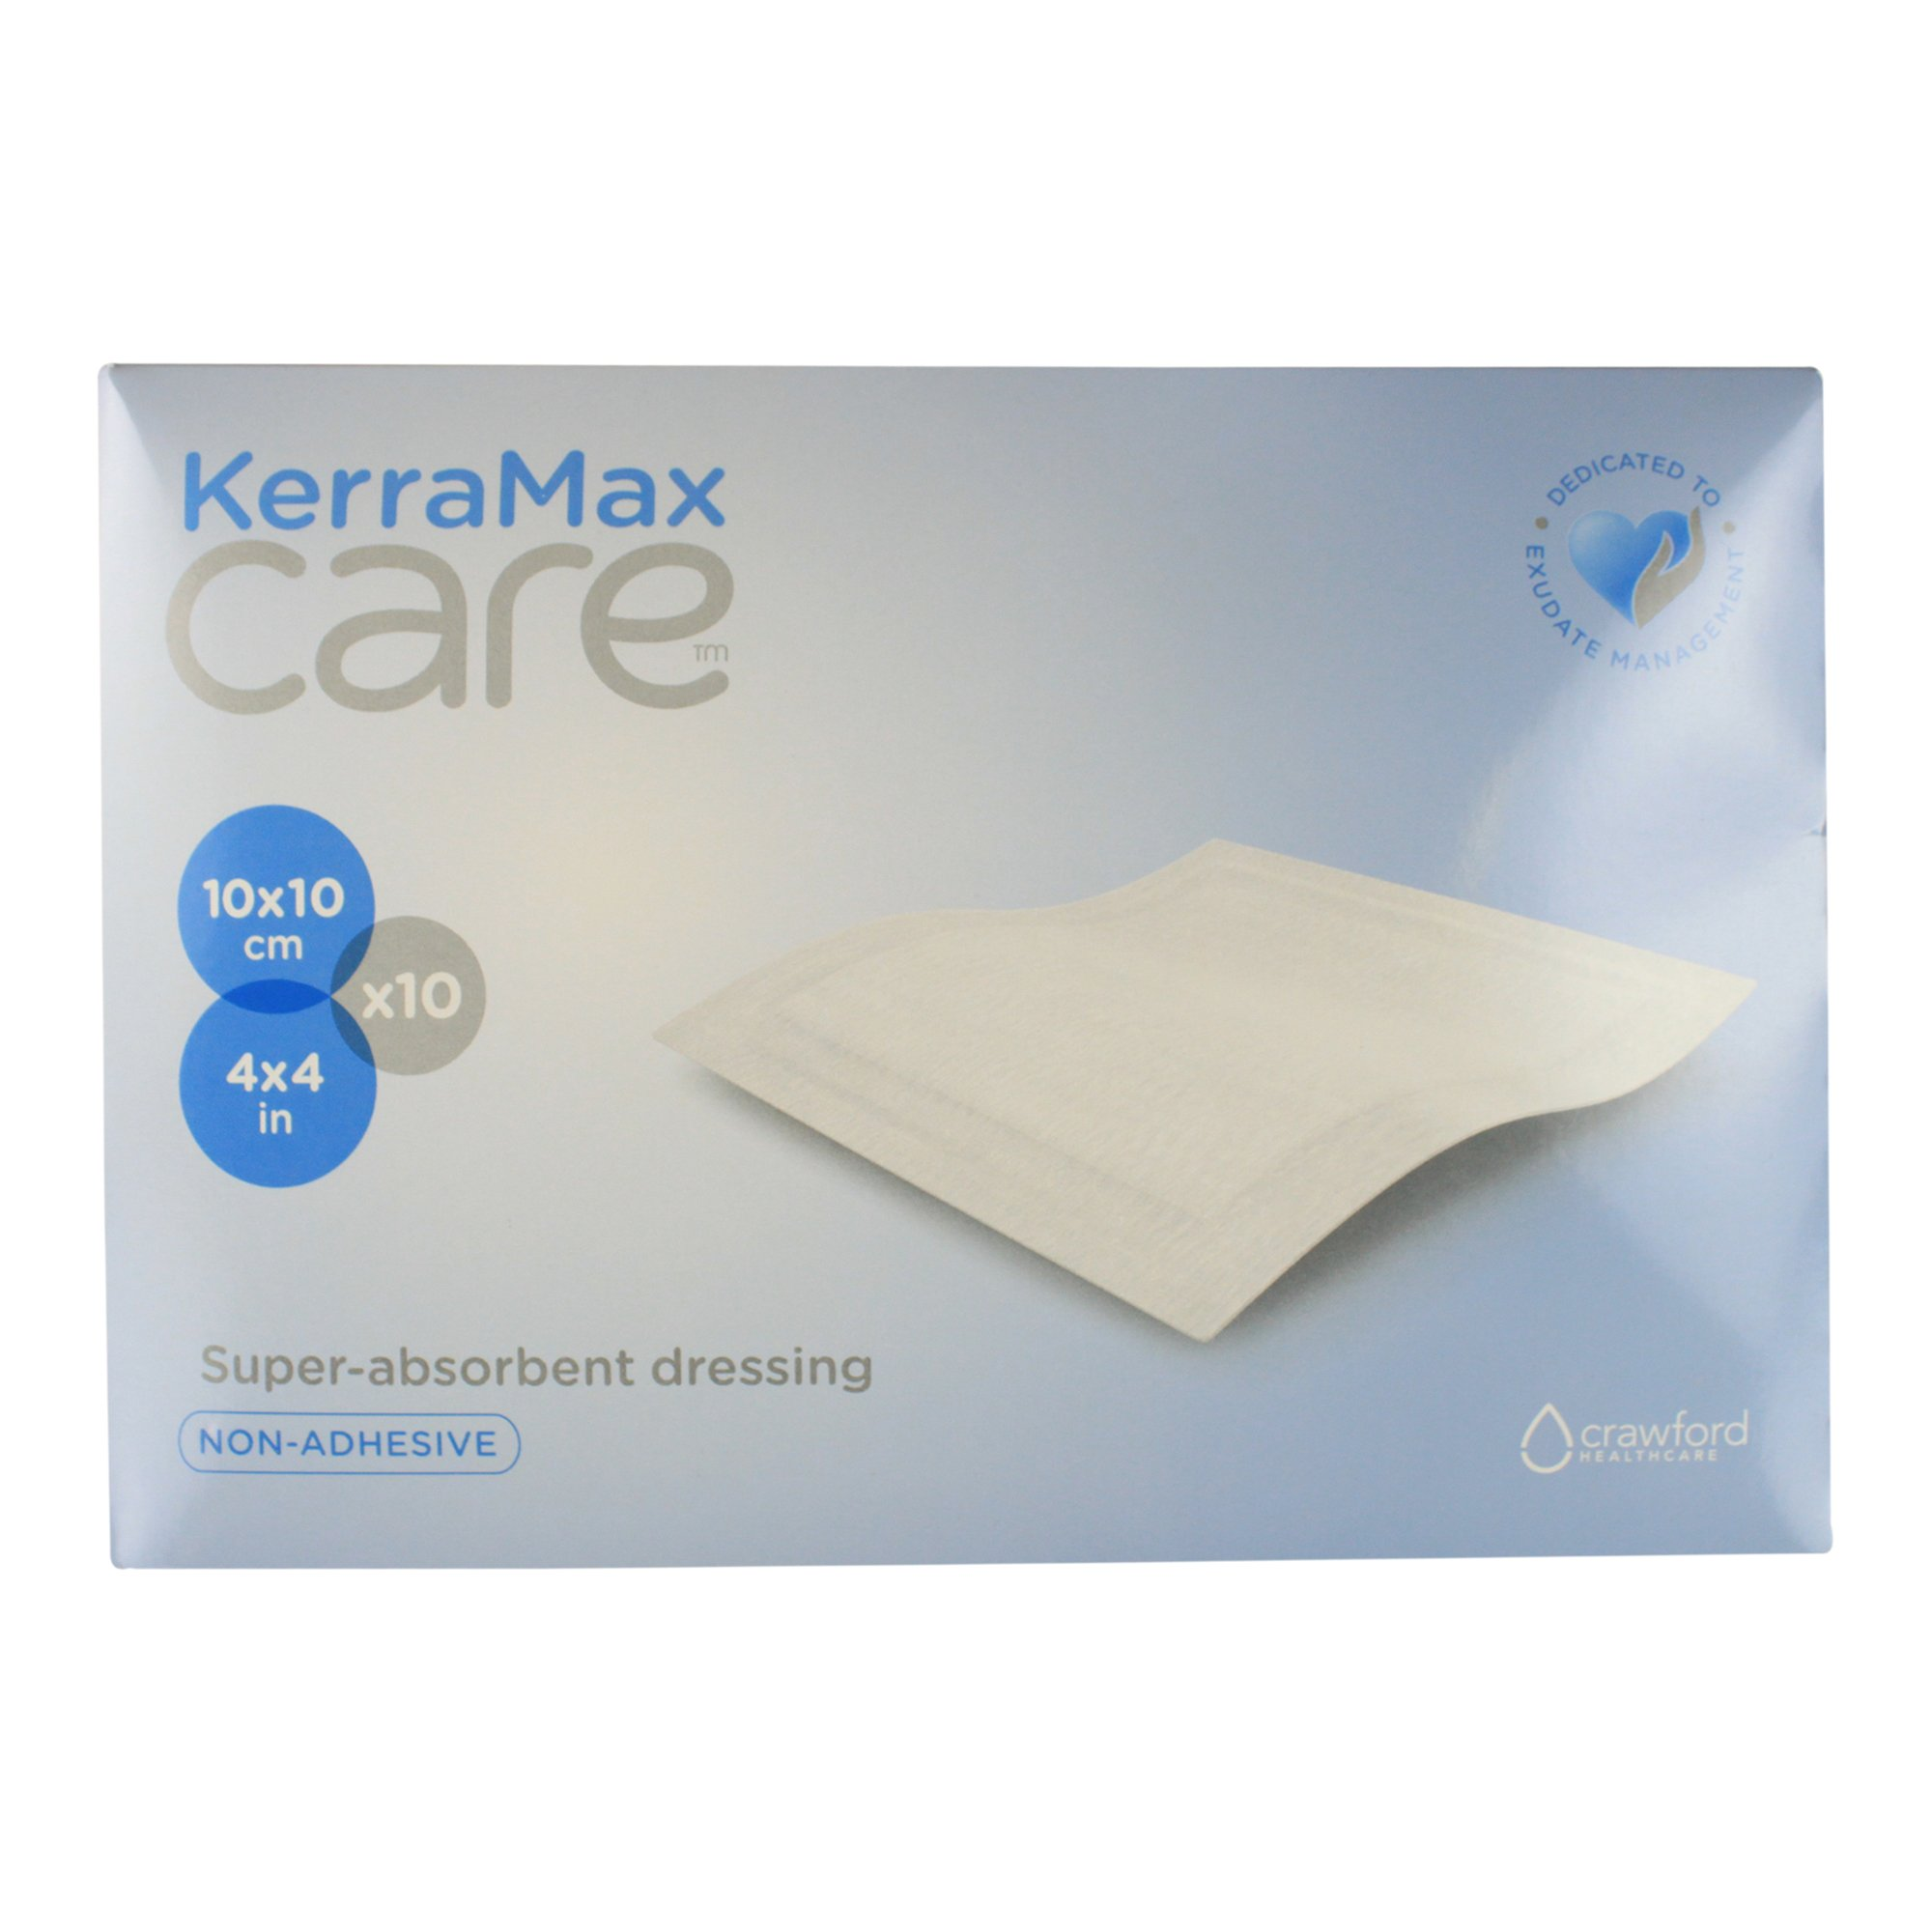 KerraMax Care 4''x4'' Super Absorbent Wound Dressing (PRD500-050) – Absorbs Exudate and Isolates it, Preventing Leaks or Drips for Improved Patient Comfort and Wound Care Treatment (Box of 10)